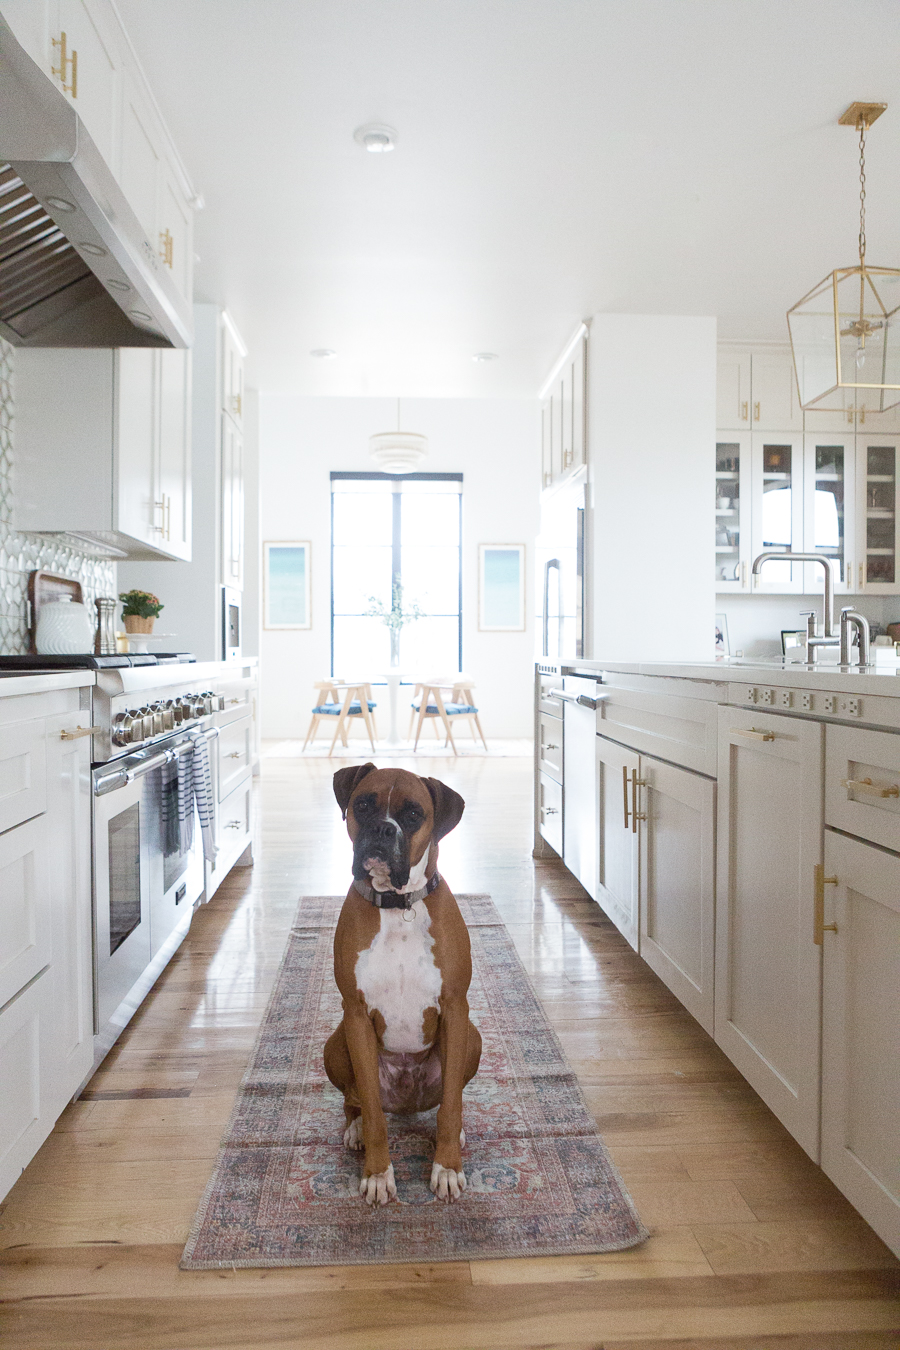 10 Beautiful Kitchen Runners for Your Home kitchen runner with wood floors and white cabinetry with a boxer dog sitting on top of the carpet